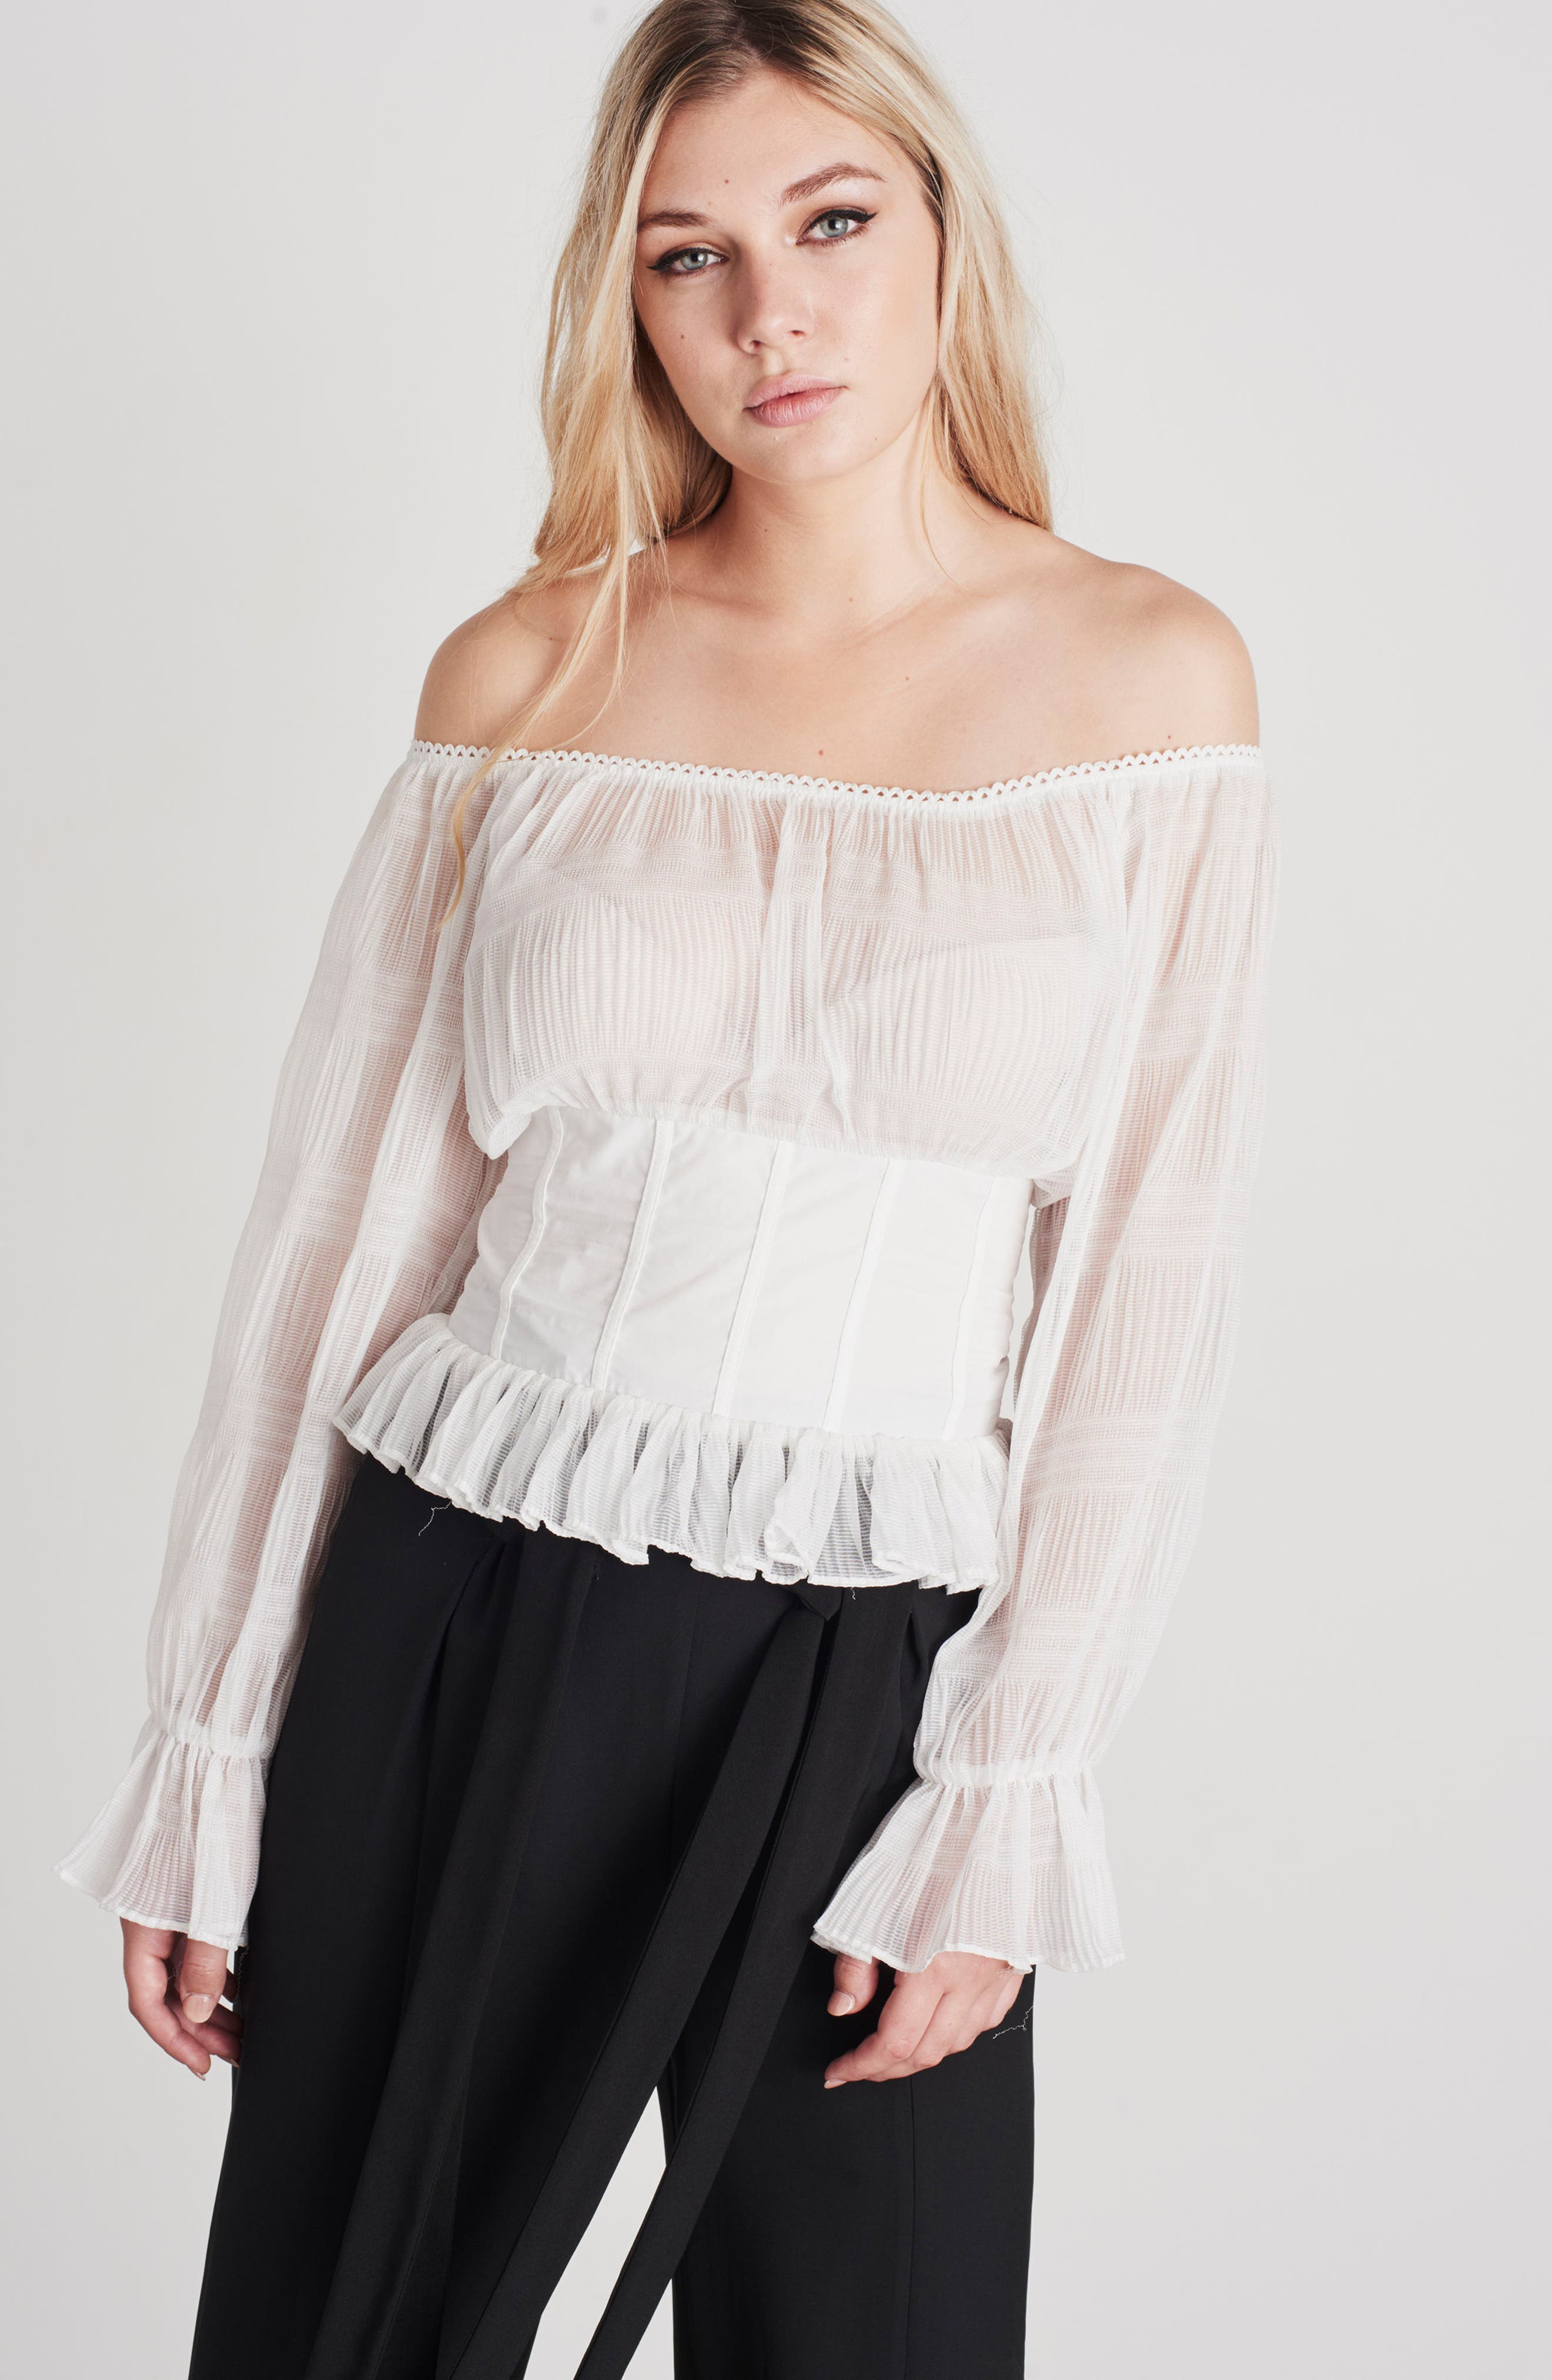 Date Night Off the Shoulder Chiffon Top,                             Alternate thumbnail 8, color,                             100